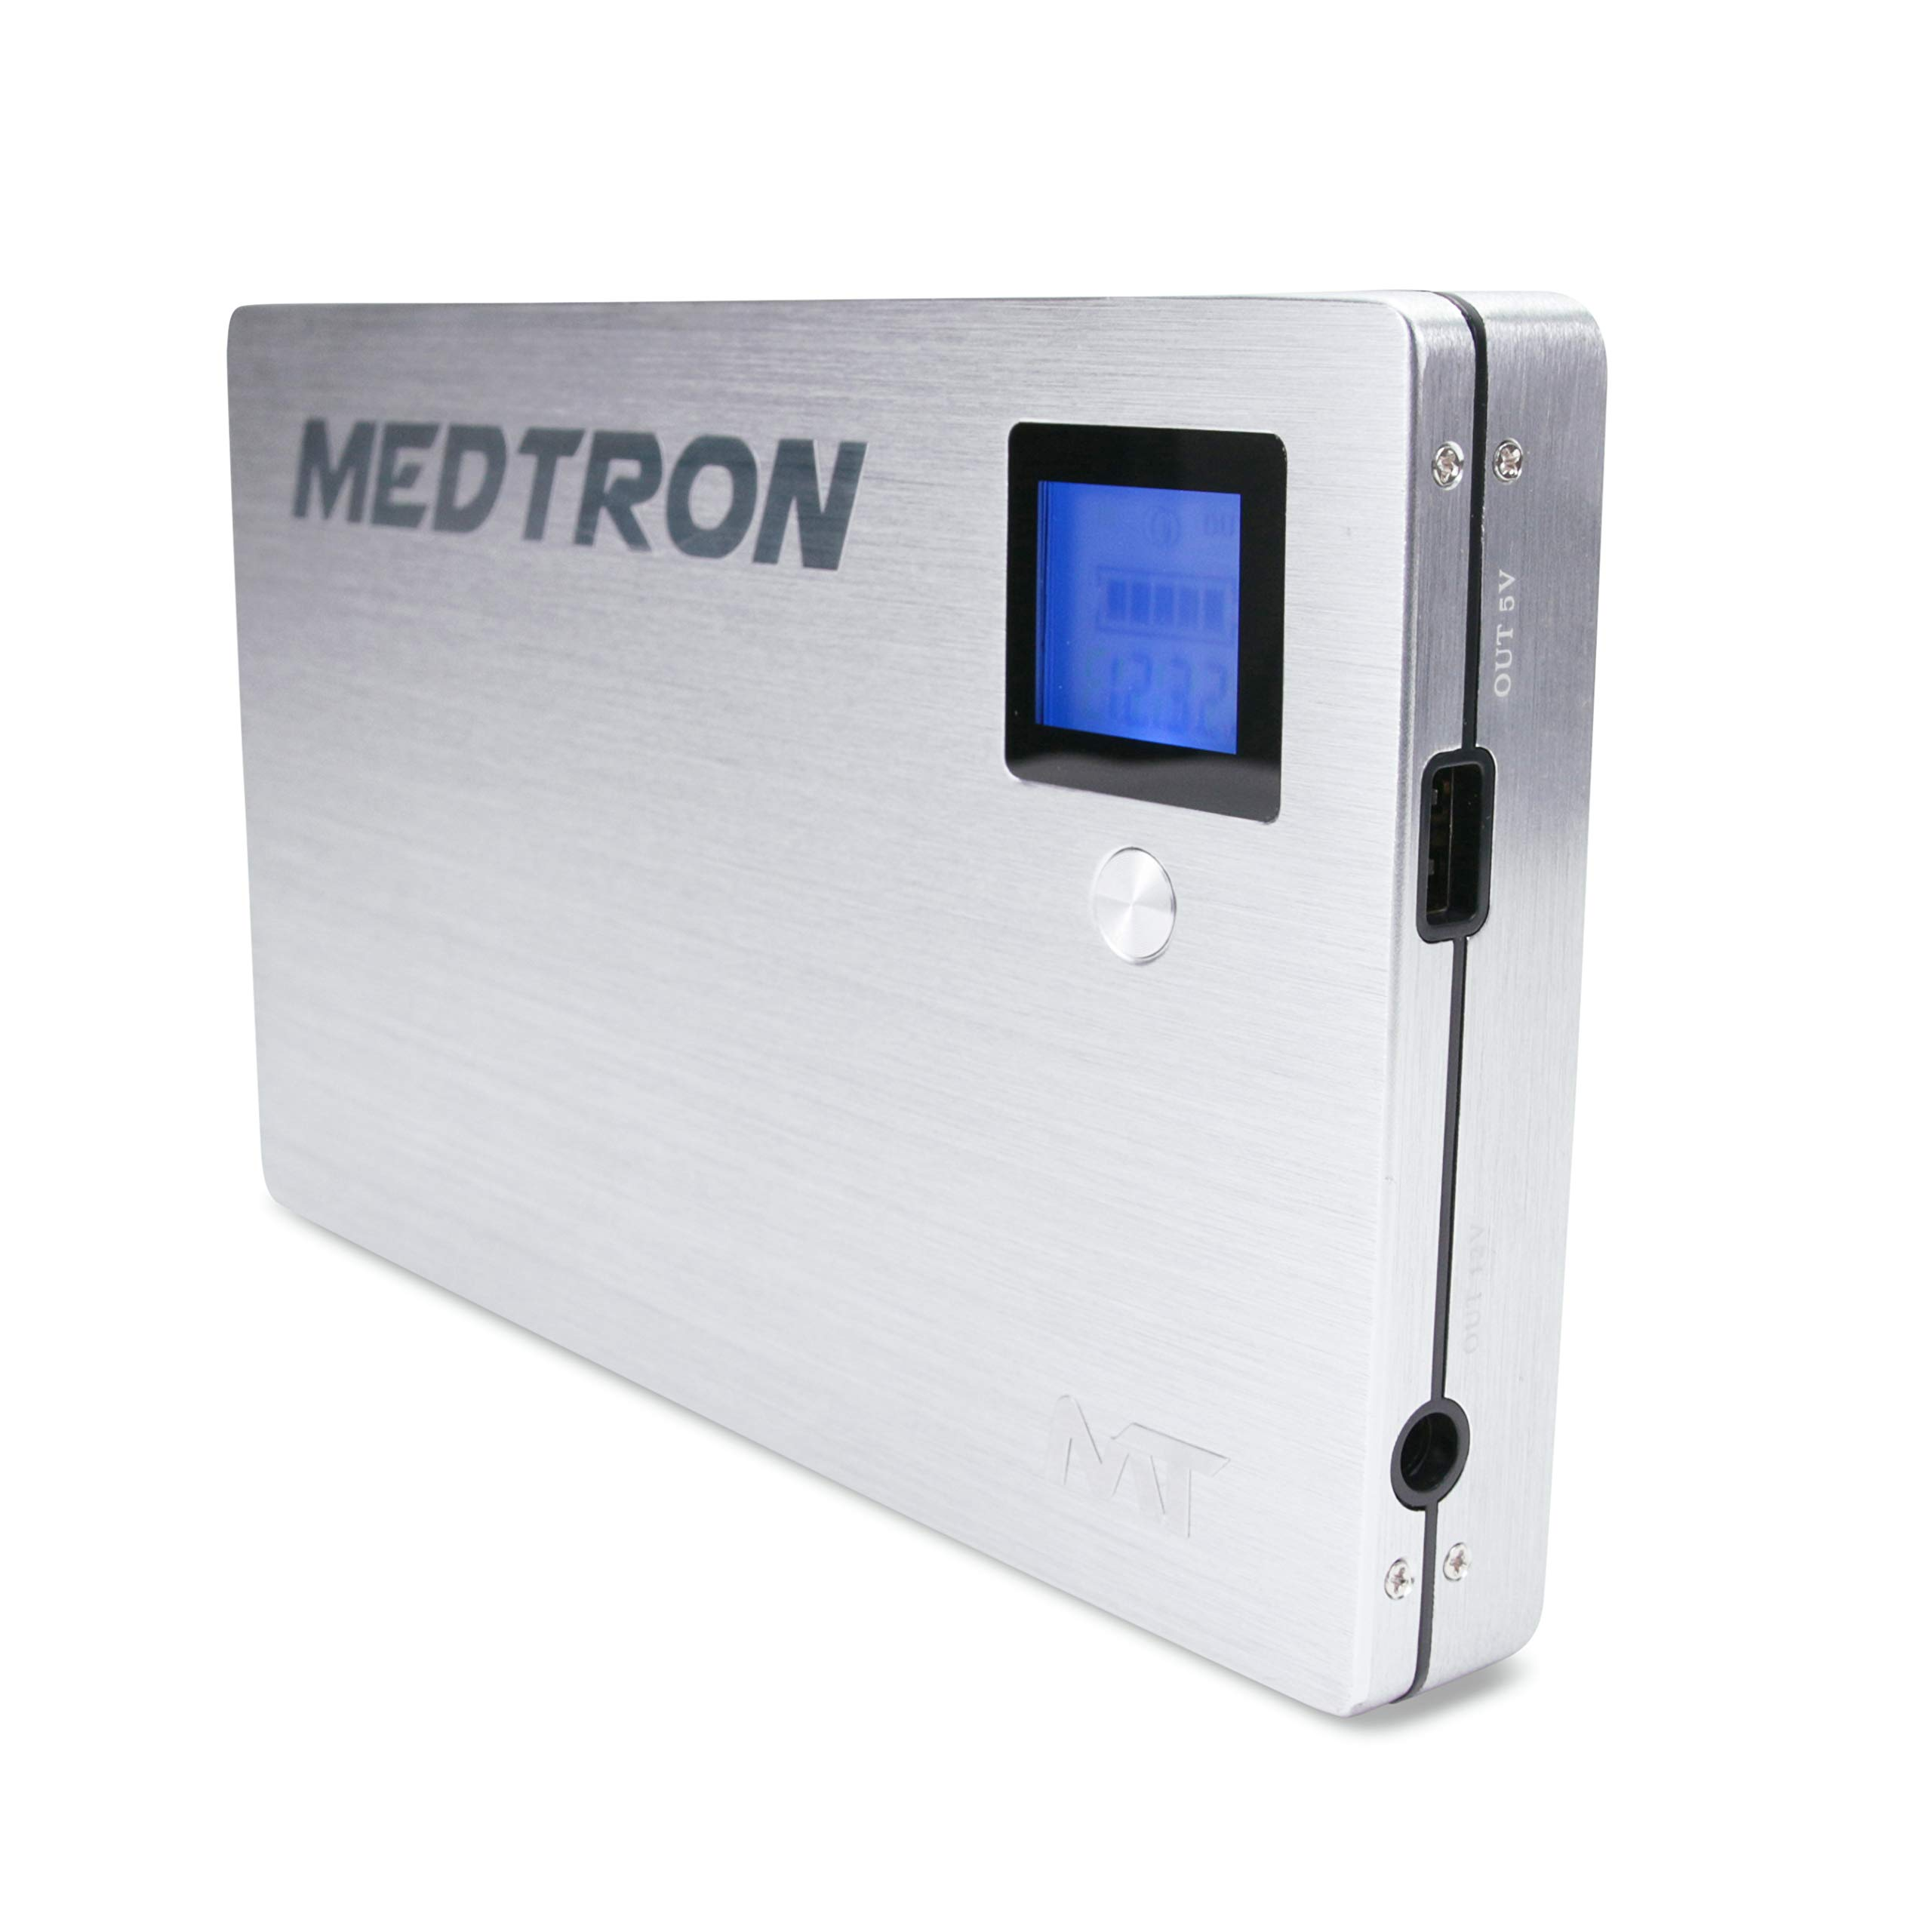 CPAP Battery for ResMed S9/S10 Series | Portable Travel Power Emergency CPAP Battery Pack Supply by MedTron, Model # G-24